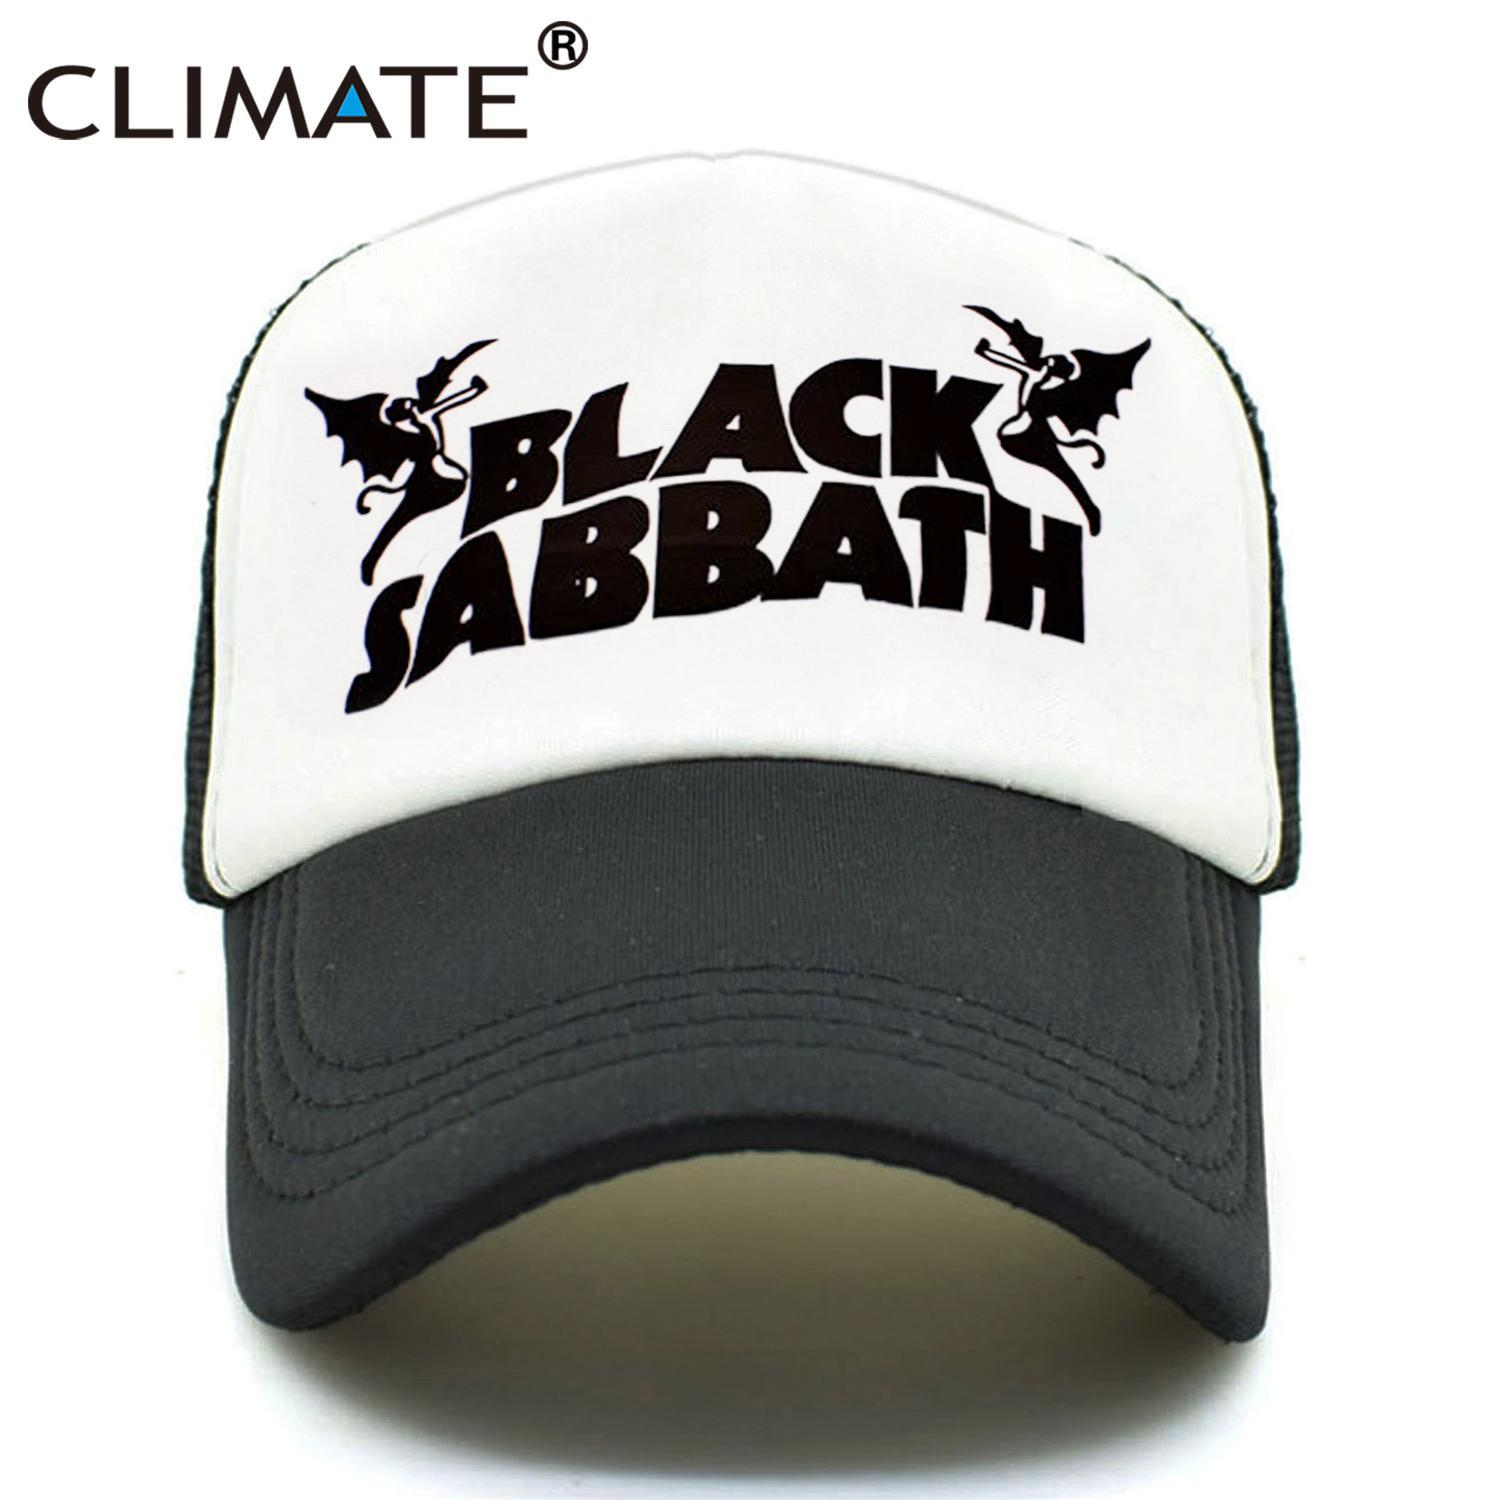 CLIMATE Men Women Trucker Caps Black Sabbath Rock Caps Cool Summer Heavy  Metal Rock Music Band Baseball Mesh Net Trucker Cap Hat Cap Hat From  Fengyune 5b1934323c2